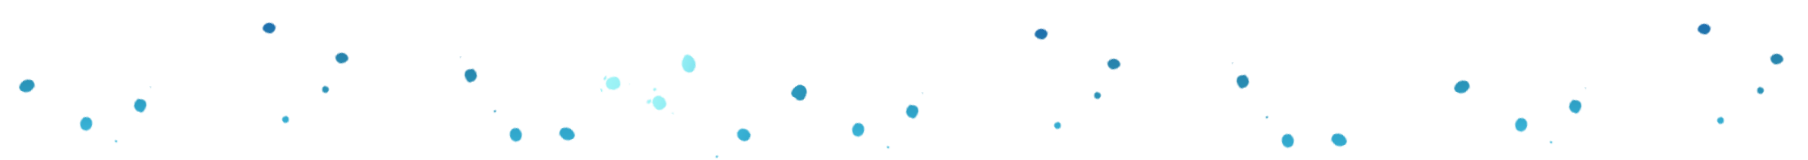 blue-dots-banner.png